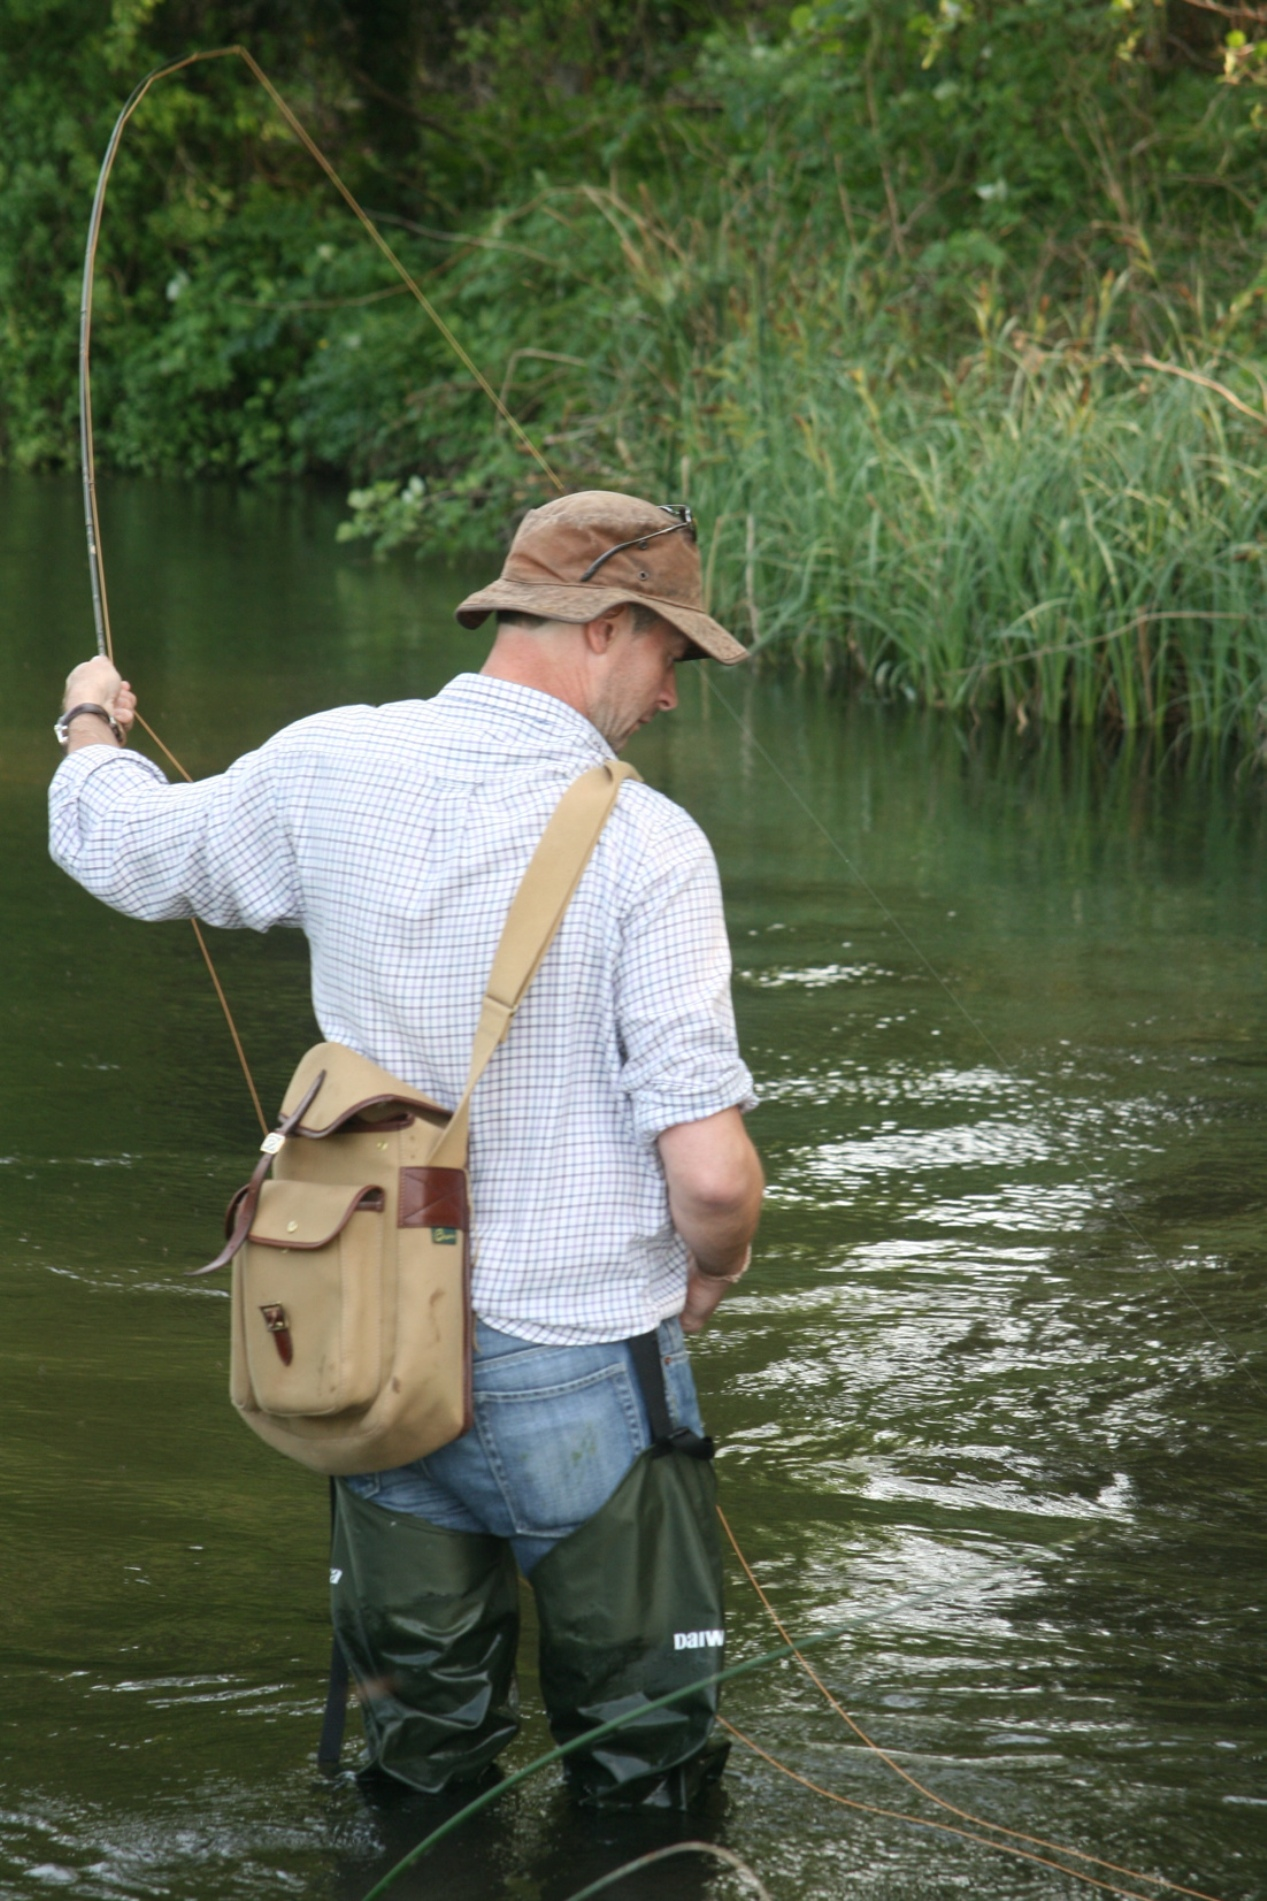 Our angling correspondent Jon Berry